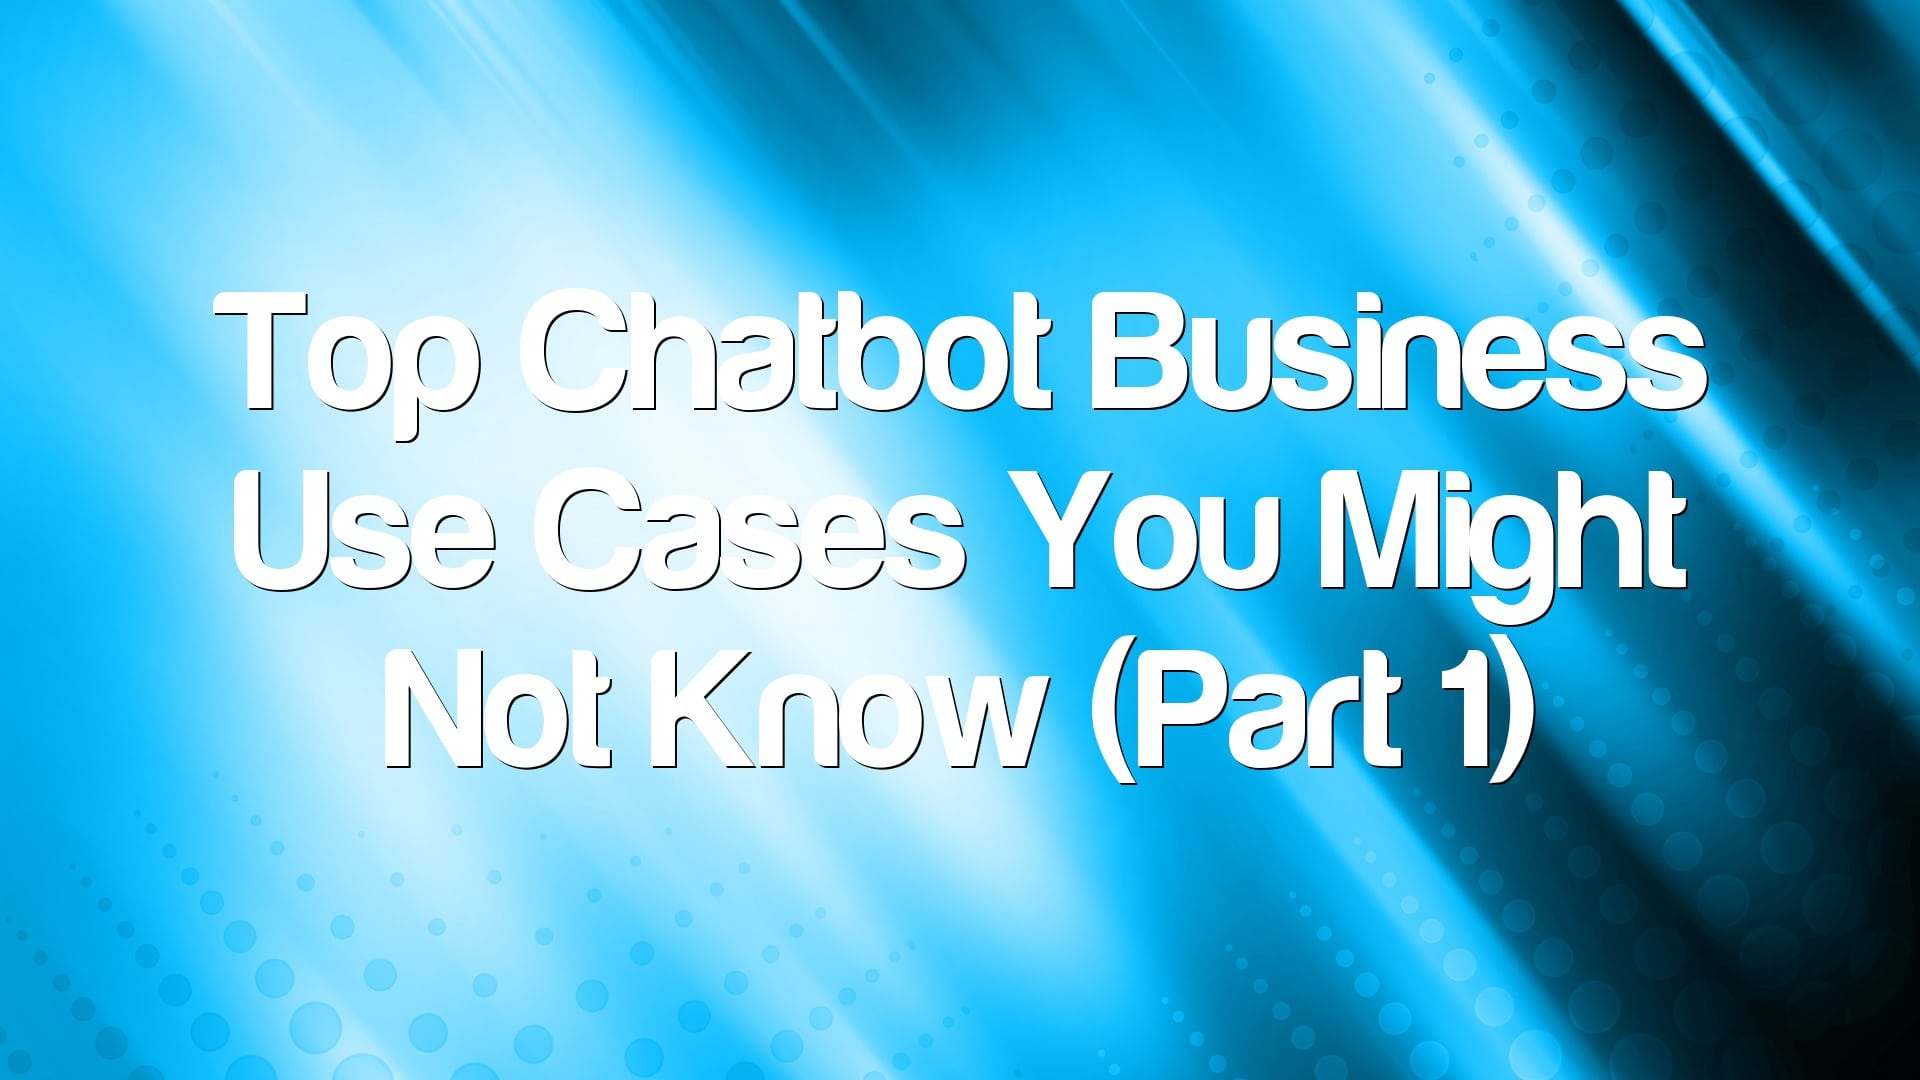 Top Chatbot Business Use Cases You Might Not Know (Part 1)